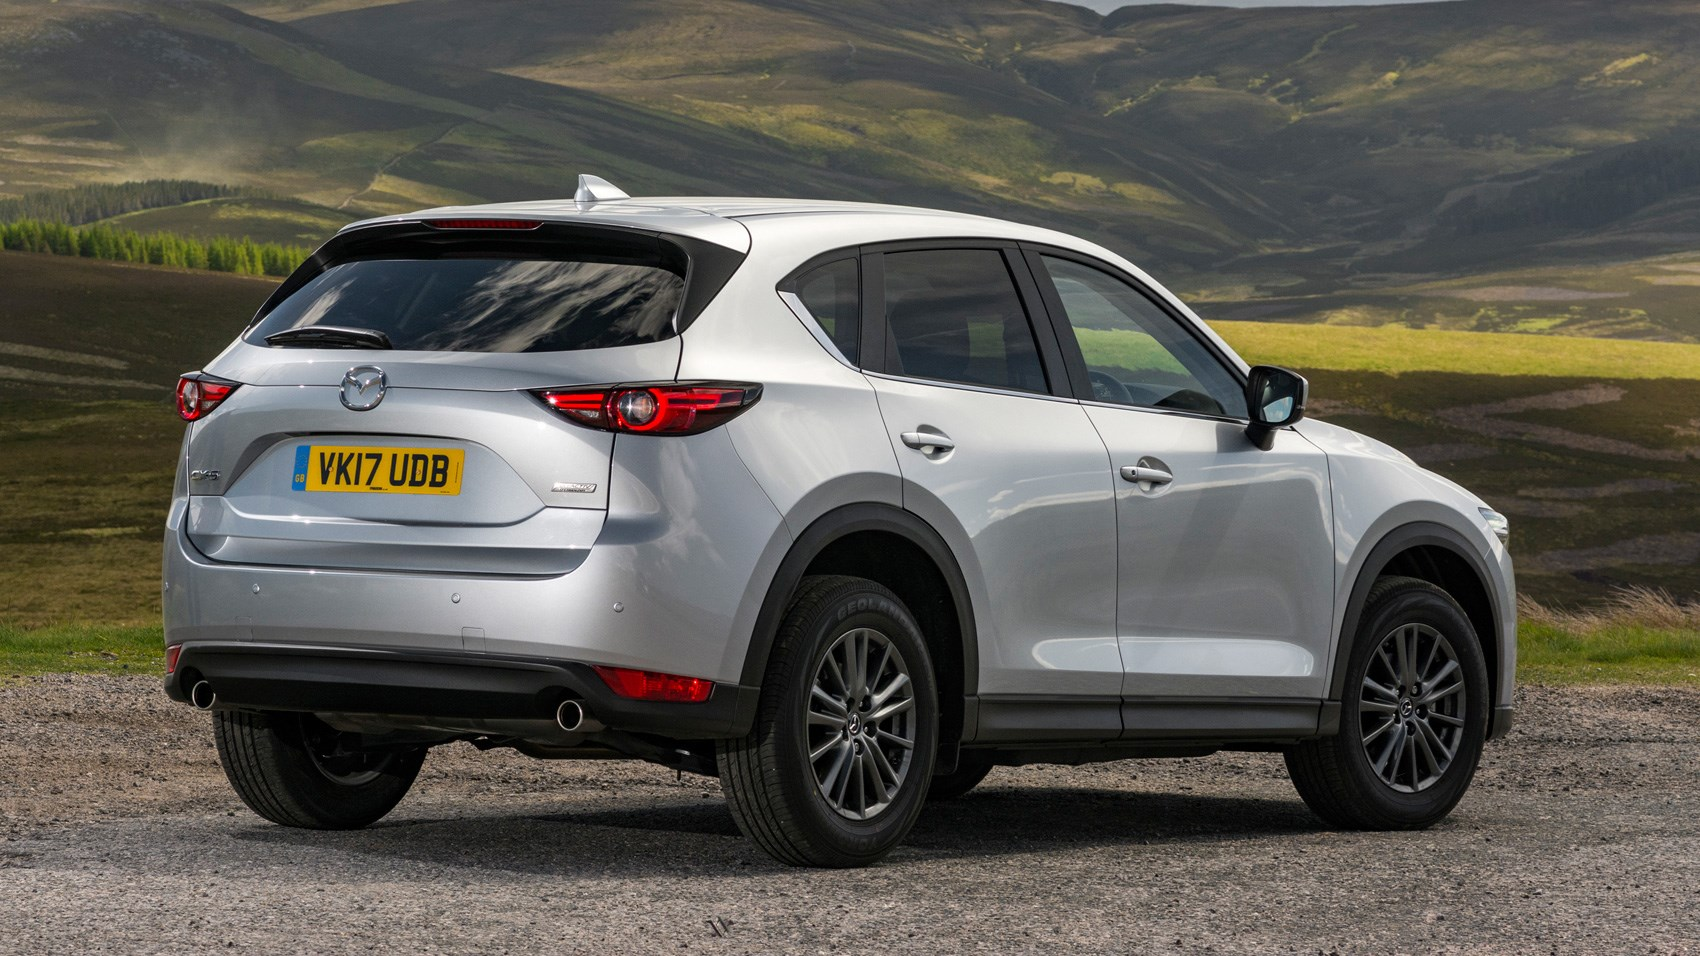 mazda cx 5 150 sport nav 2017 review car magazine. Black Bedroom Furniture Sets. Home Design Ideas